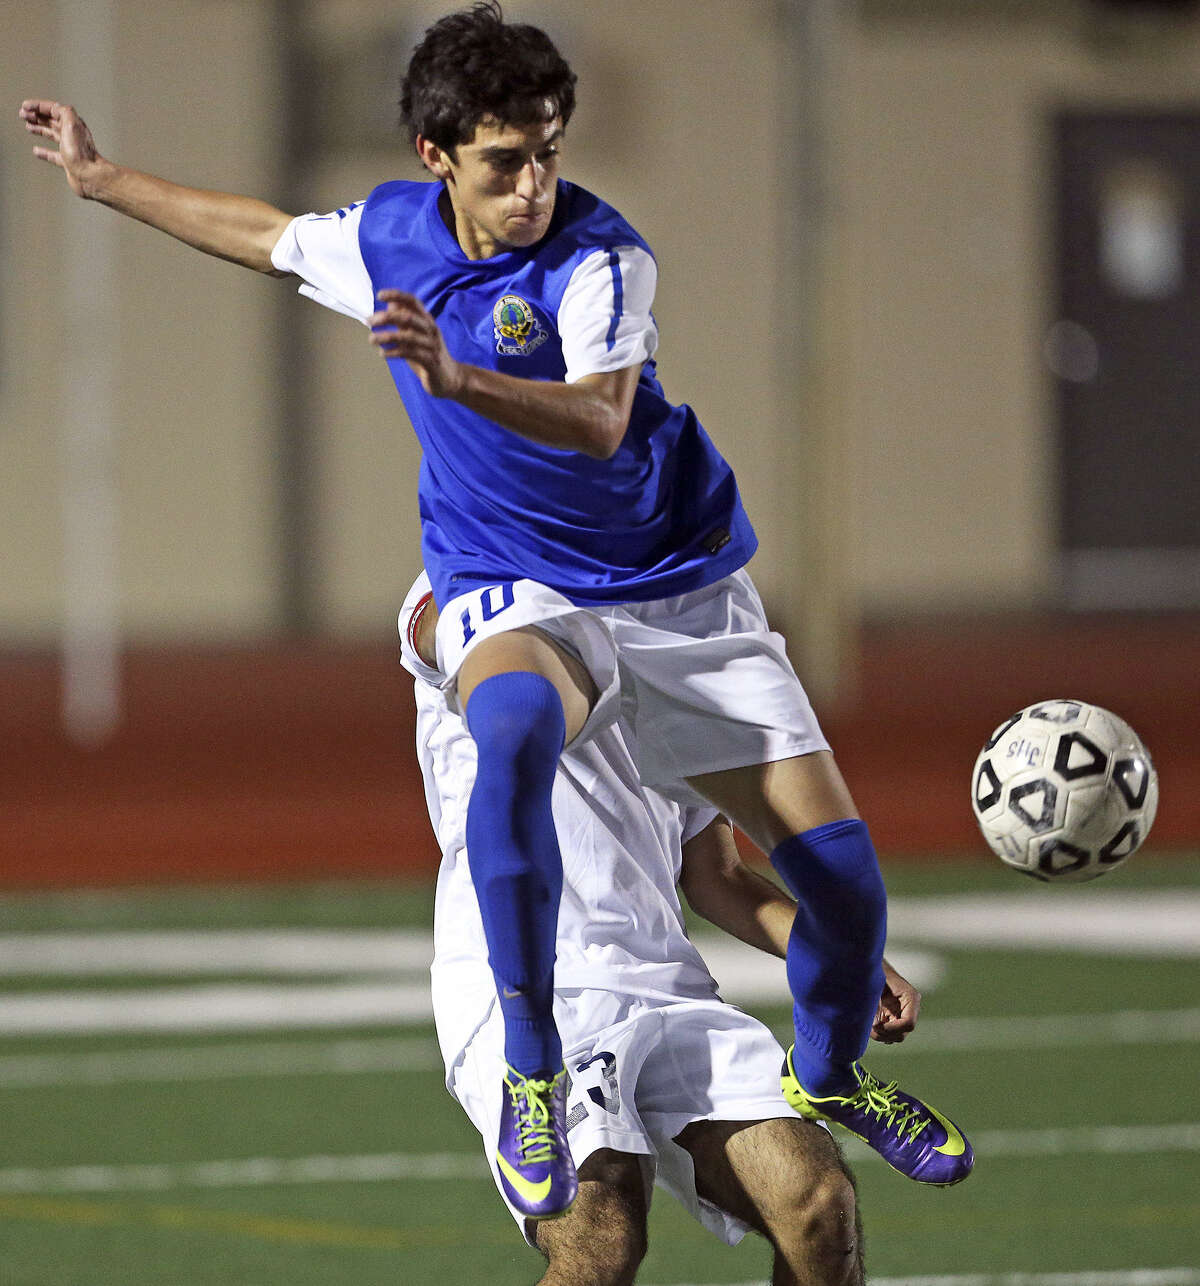 MacArthur's Nickolas Loera goes up to try and control the ball against Johnson. The game was the second half of a District 26-5A doubleheader.